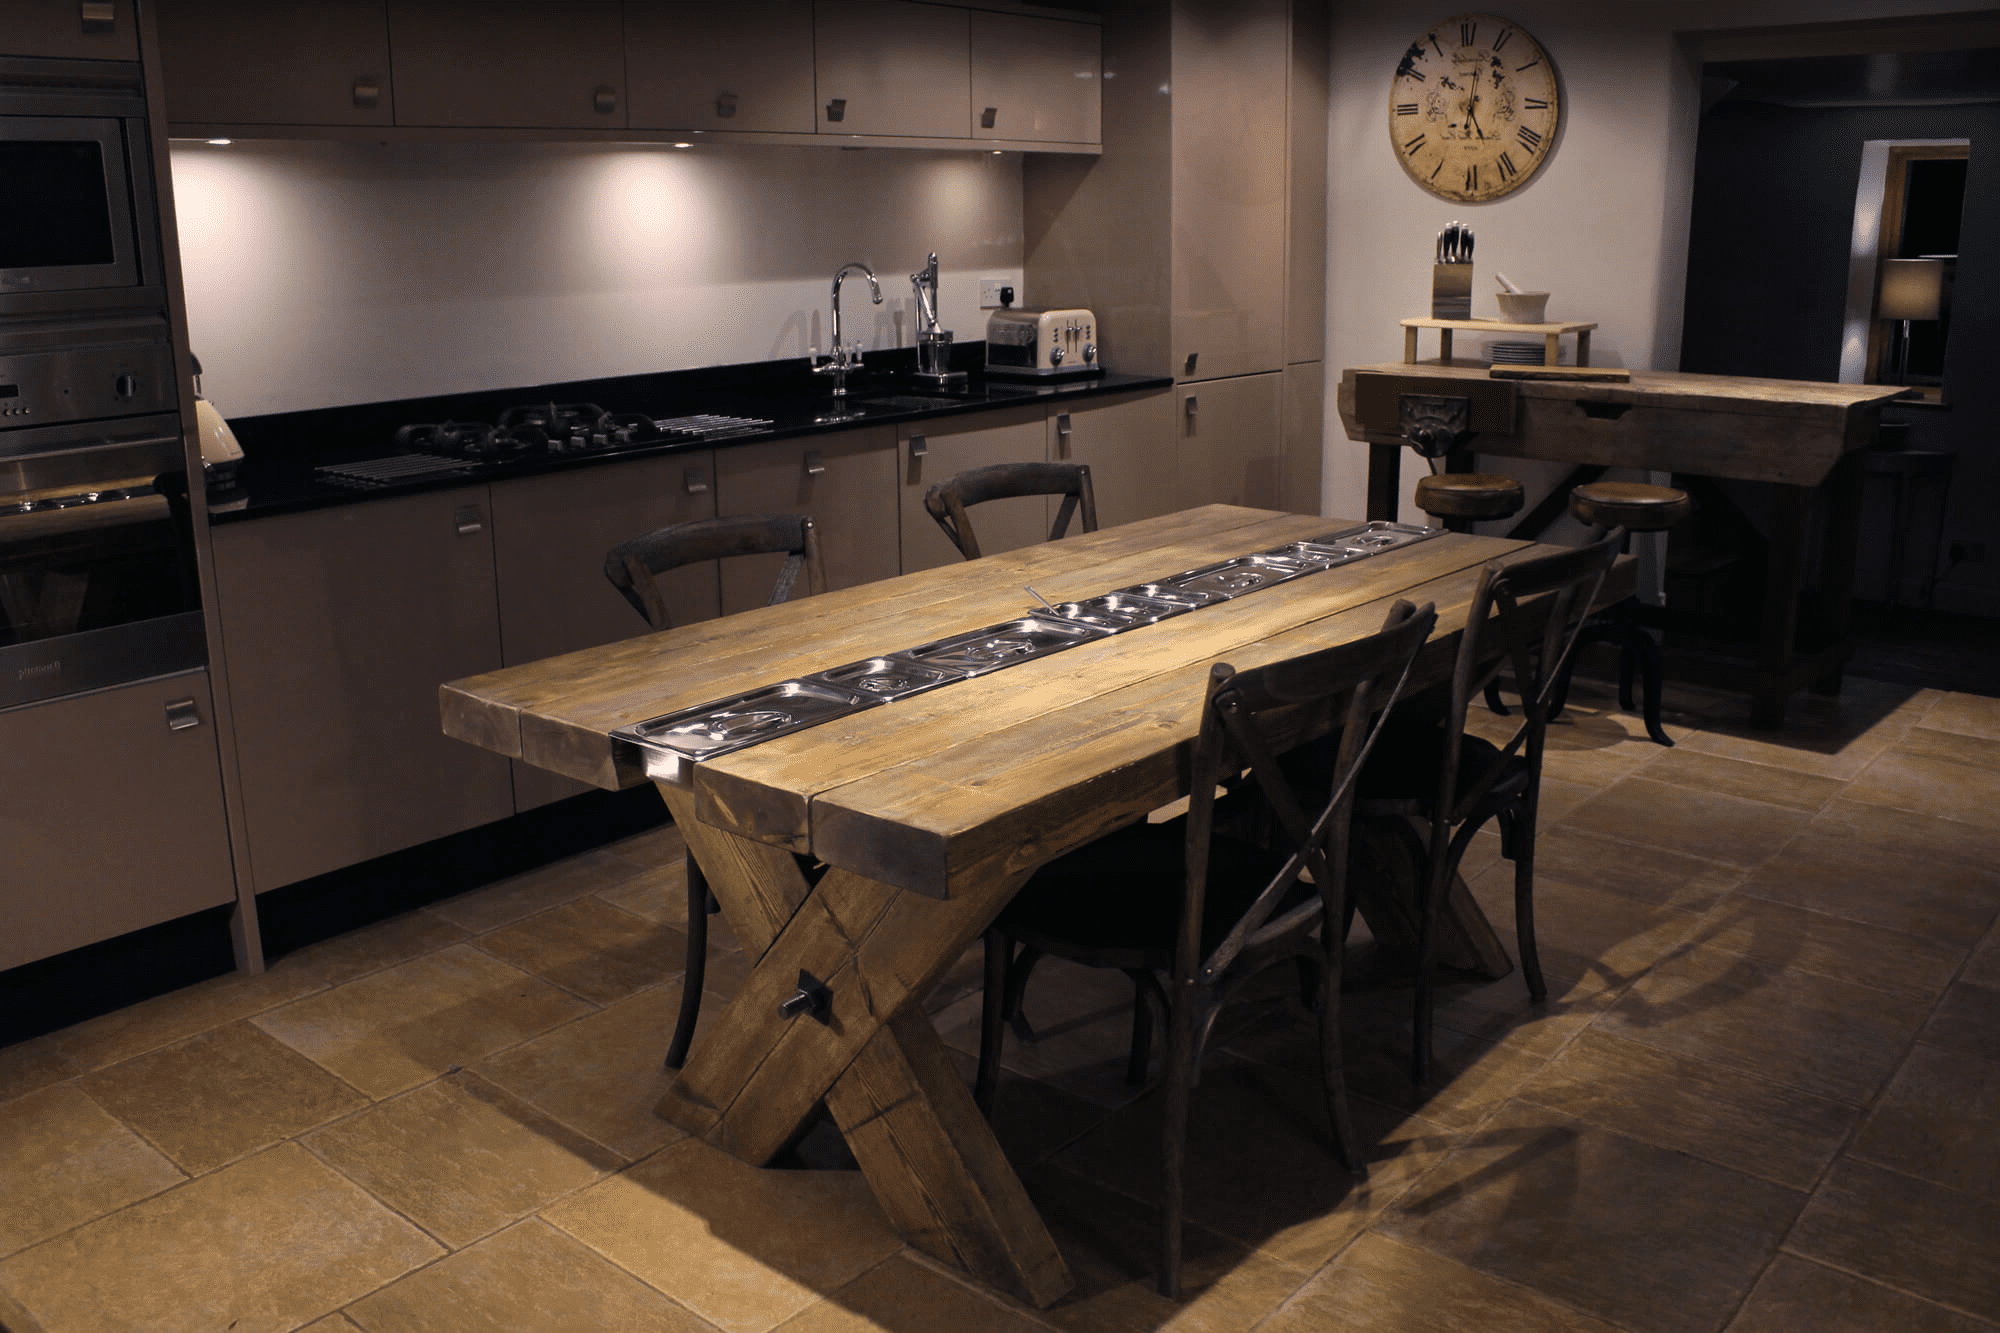 Rustic gastronorm dining table in the kitchen